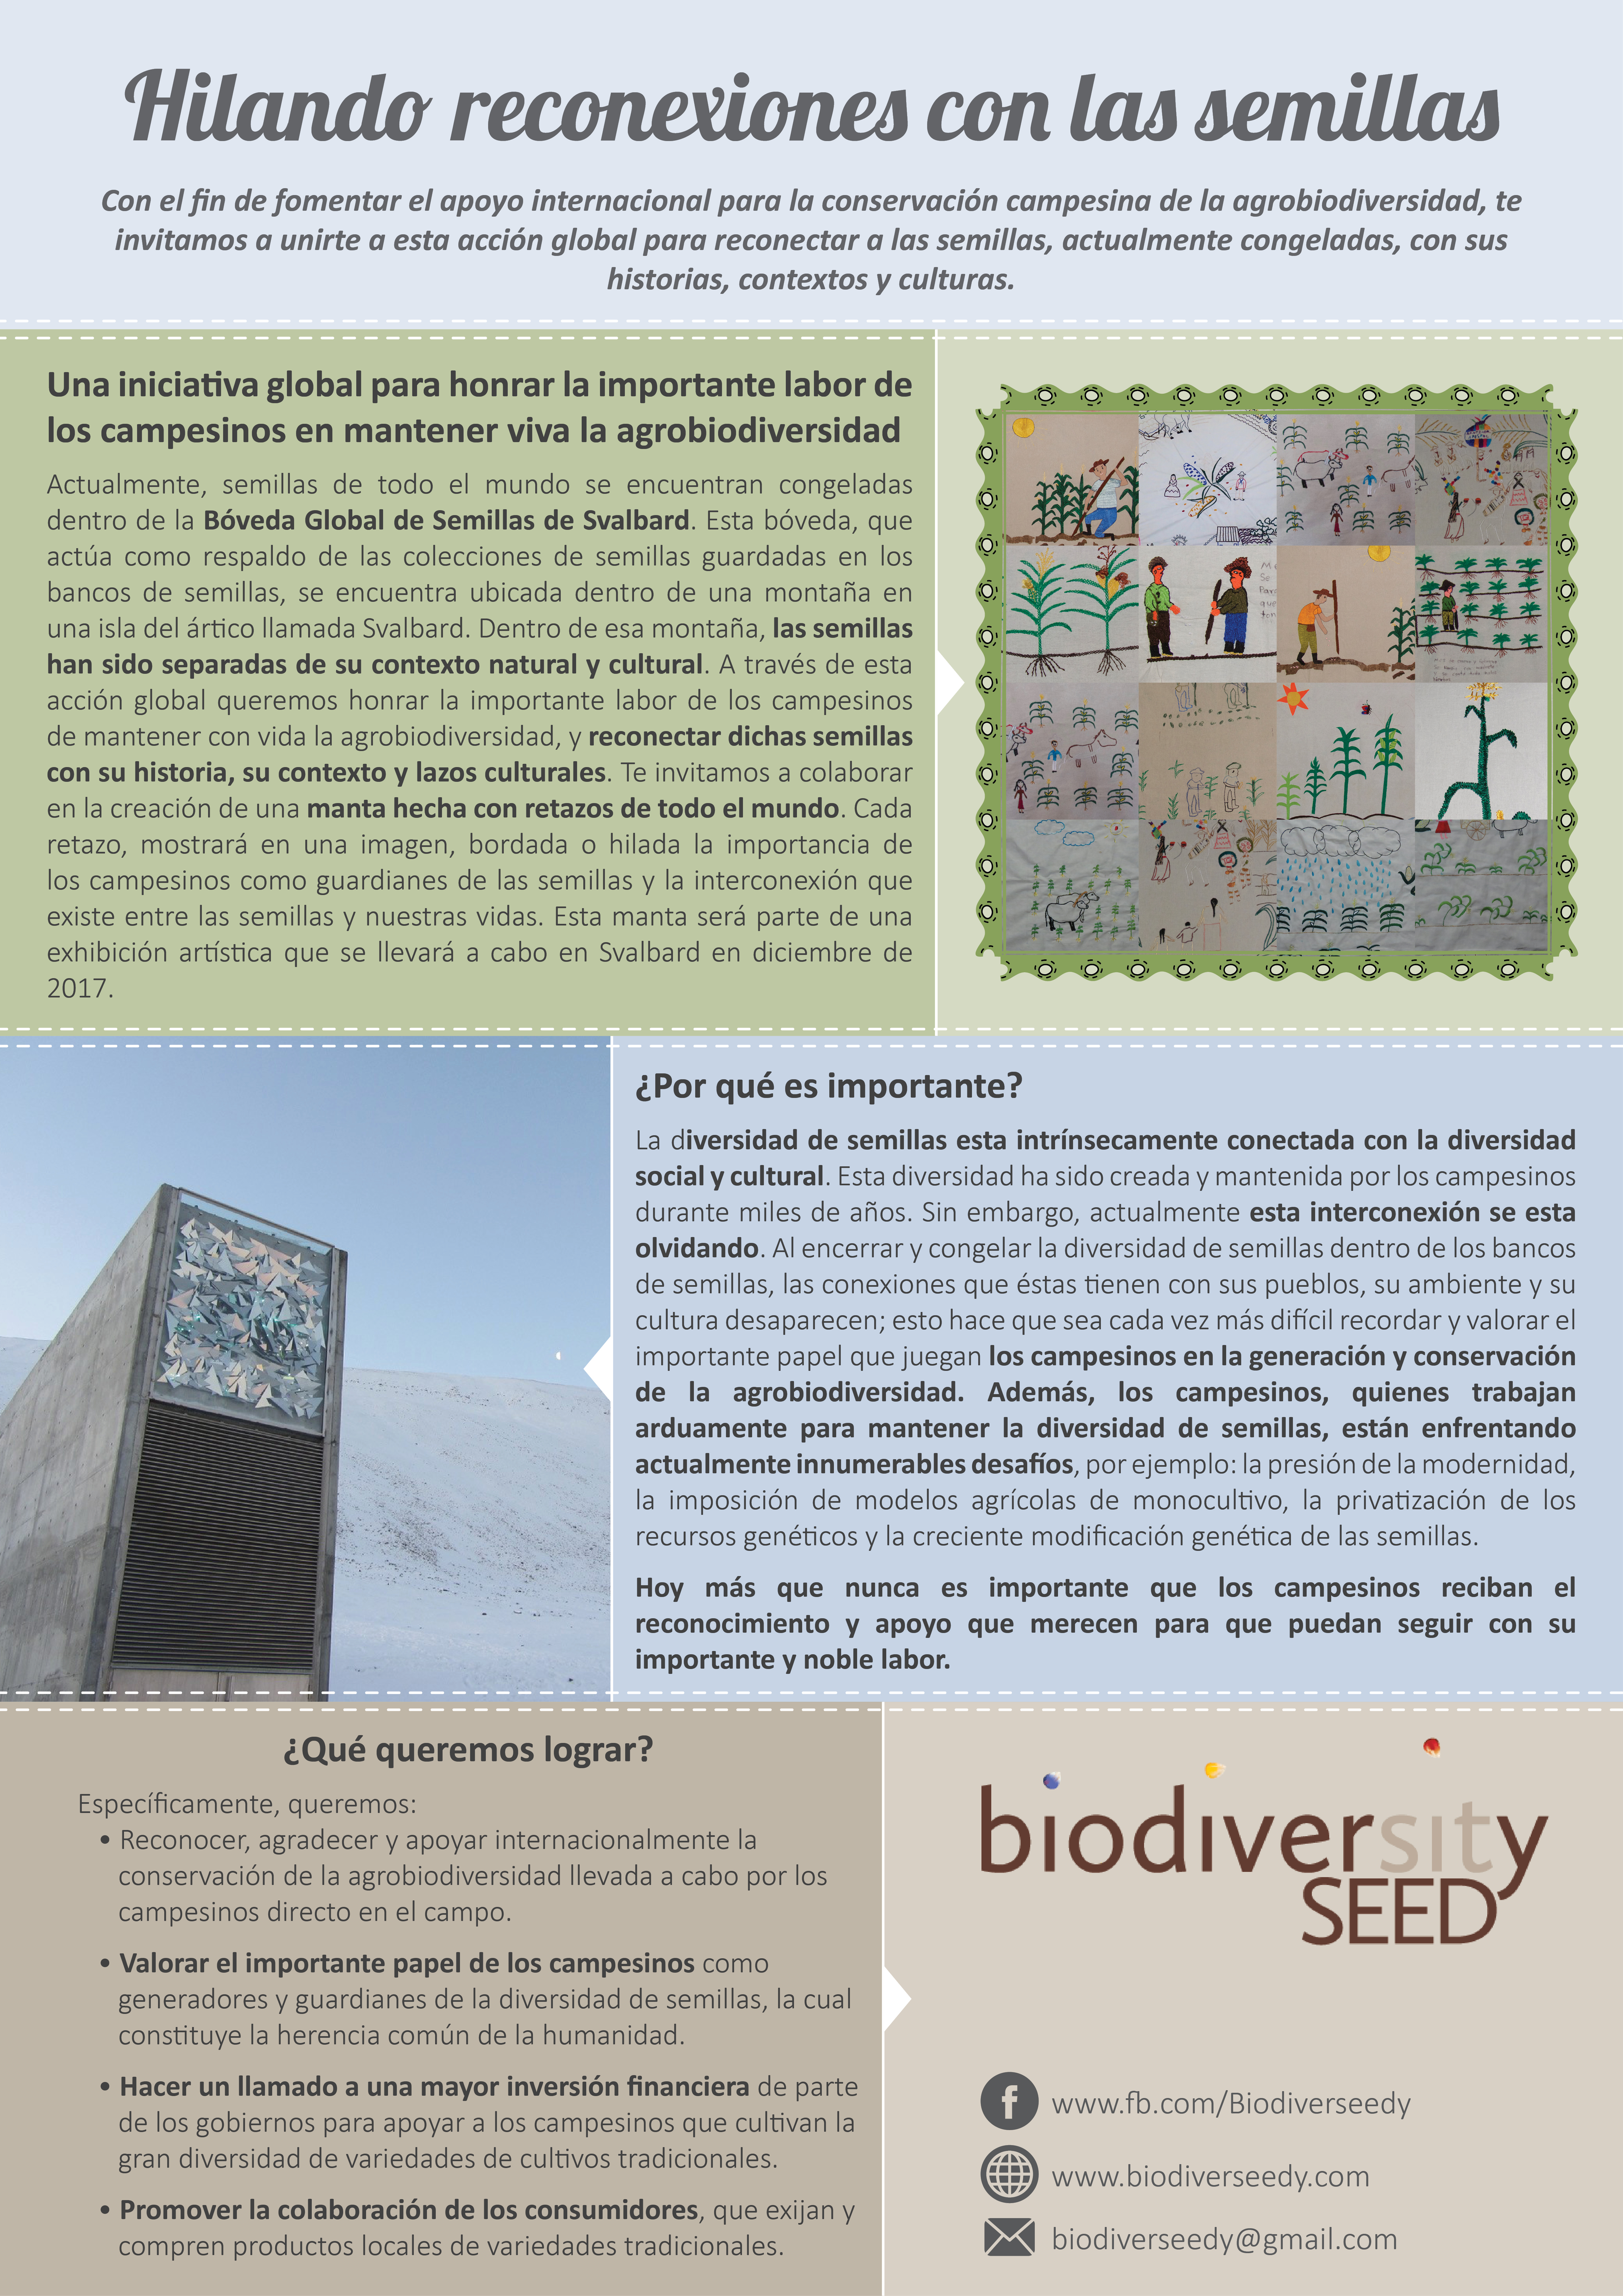 proyecto BiodiverSEEDy